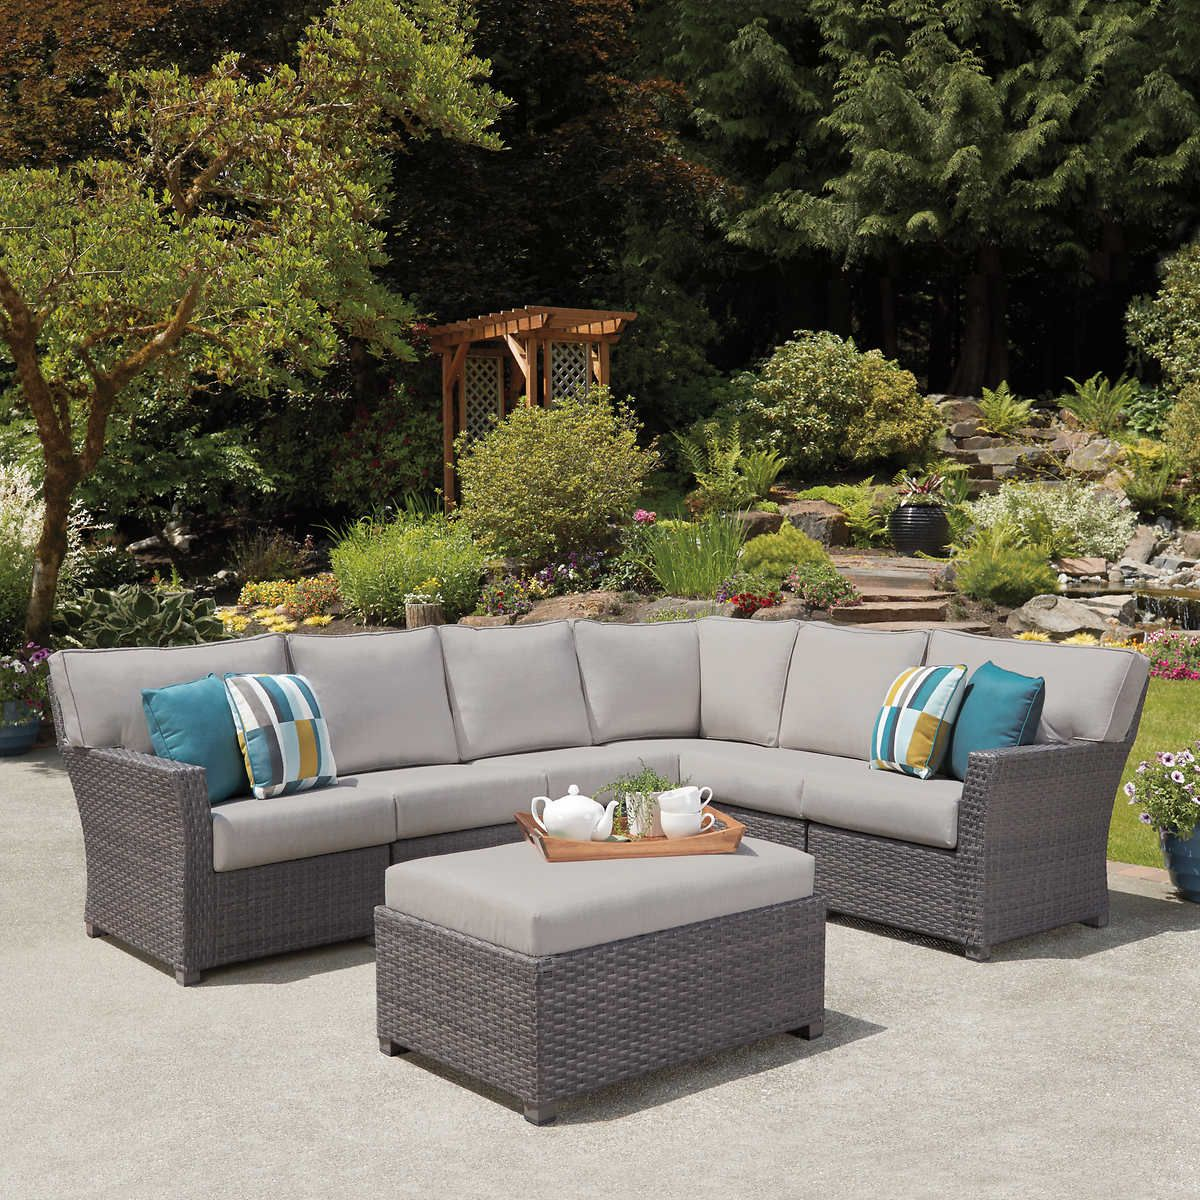 1149 99 Backyard Remodel Outdoor Decor Armless Lounge Chair